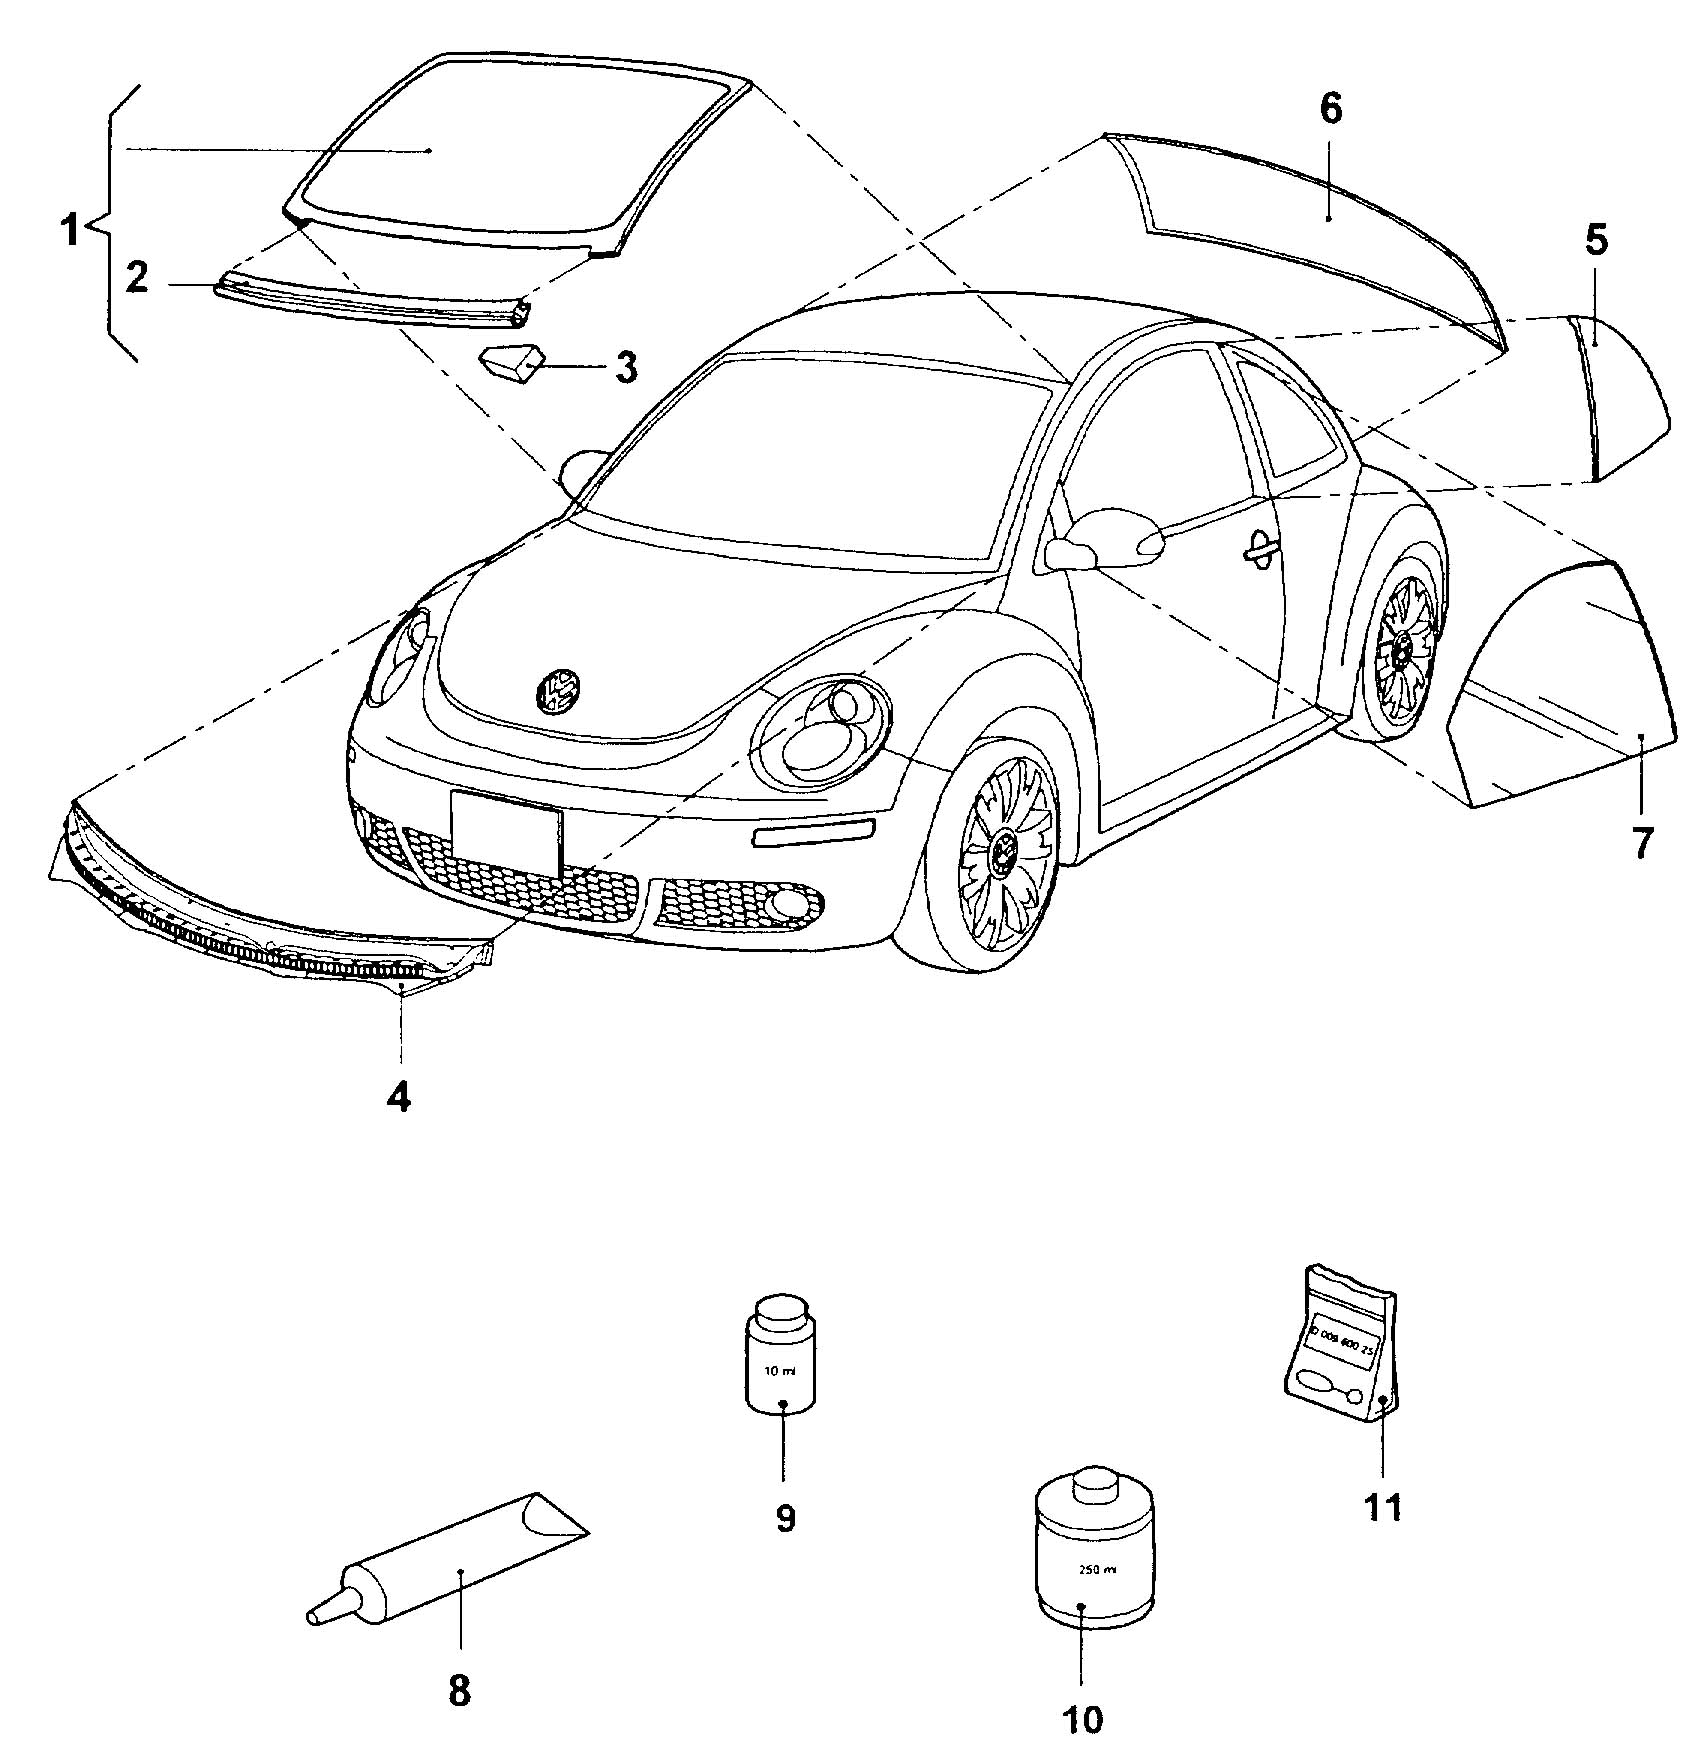 vw new beetle parts diagram three way lighting circuit f body radiator support free engine image for user